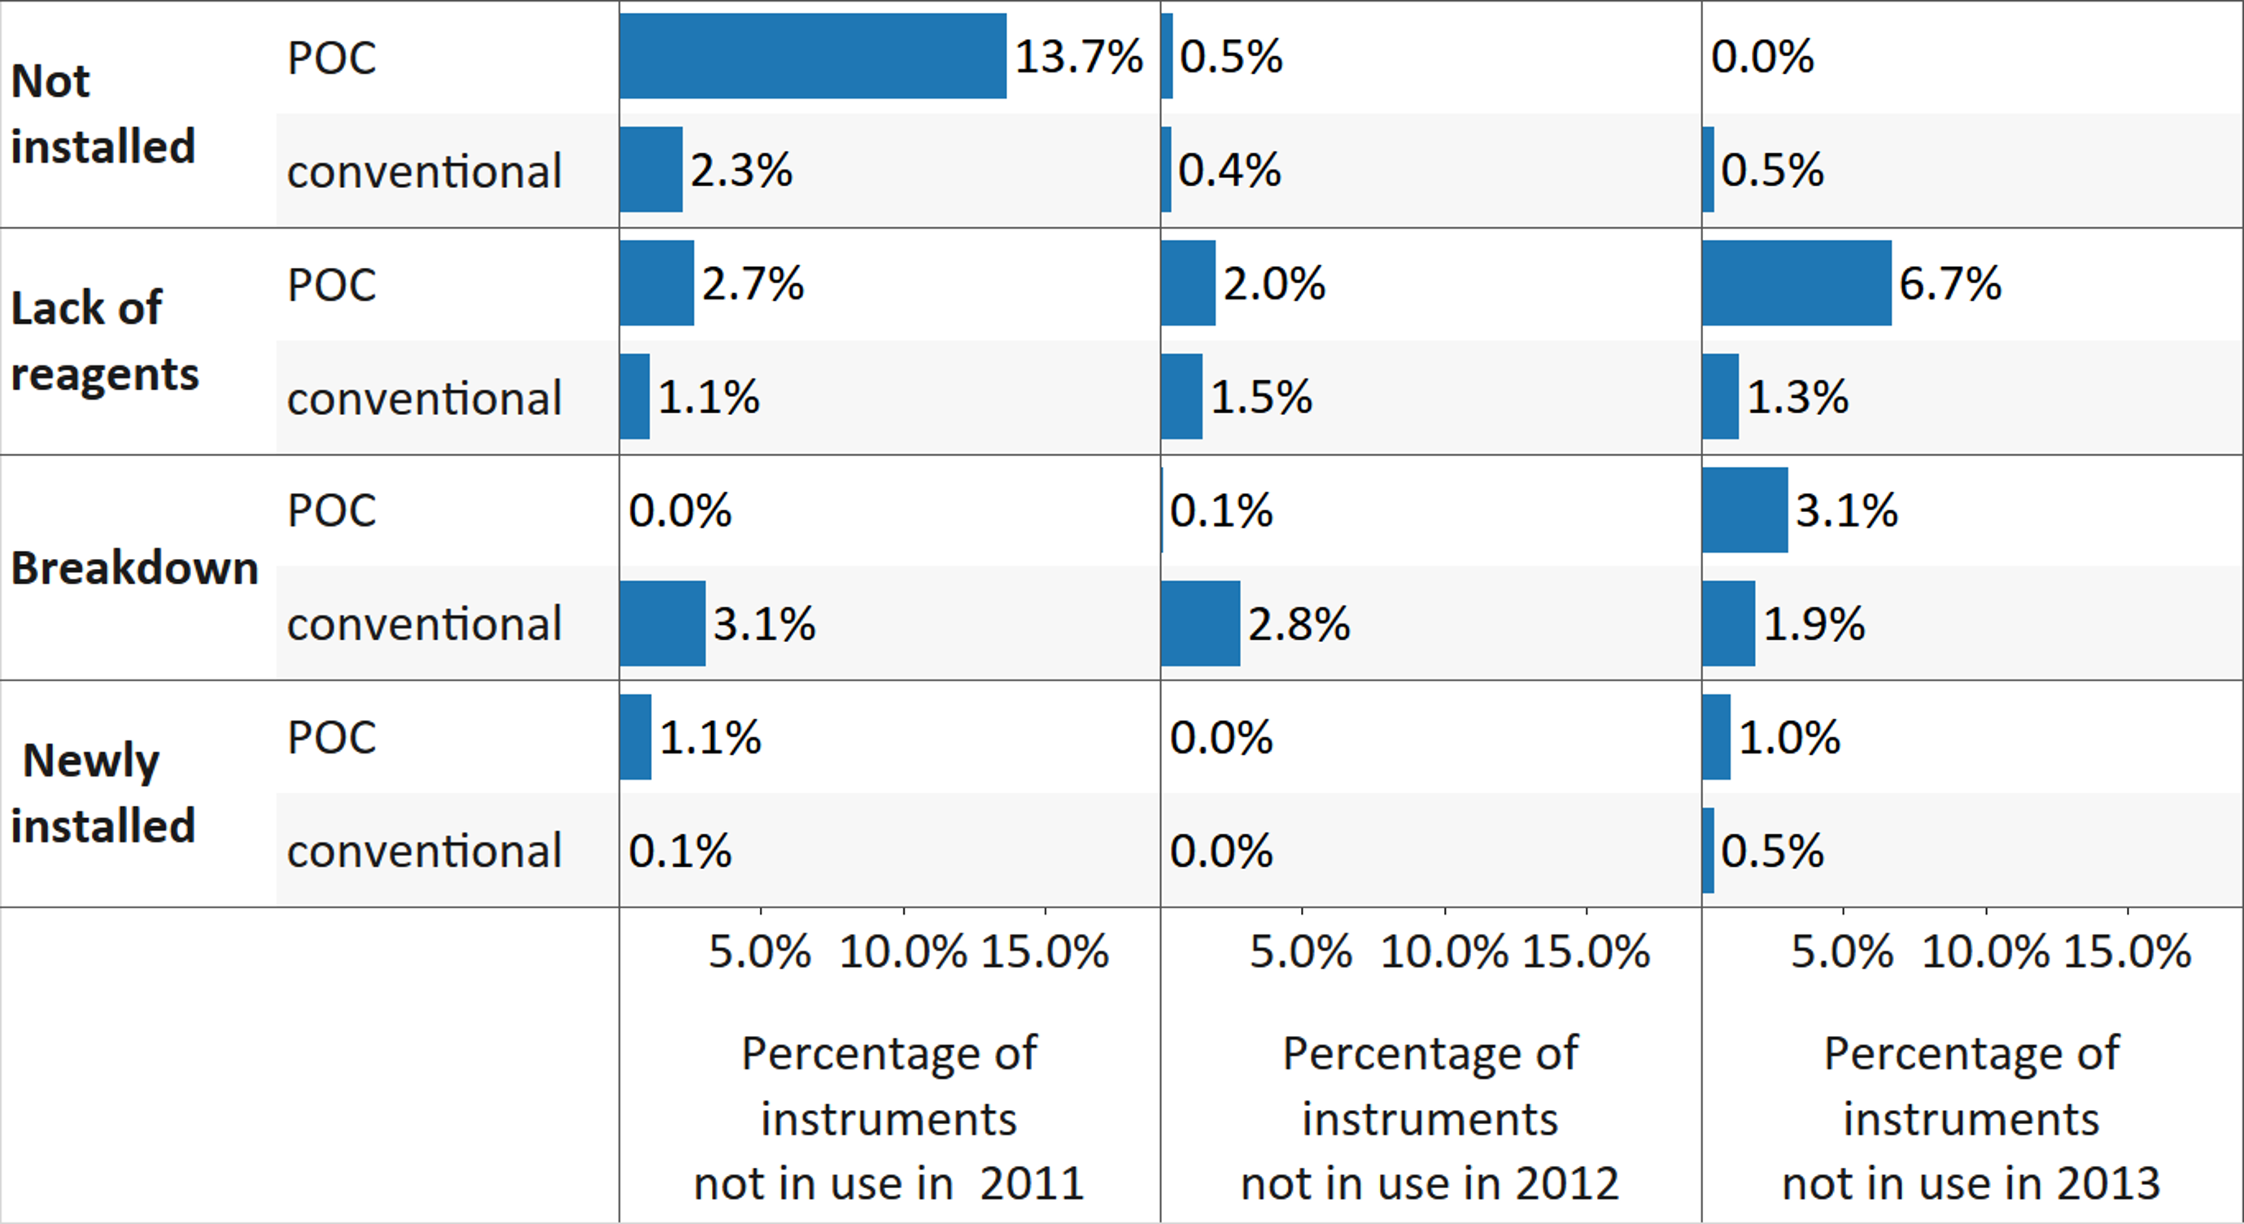 Reasons provided for nonutilization of CD4 instrumentation, for all reporting countries, disaggregated by platform.